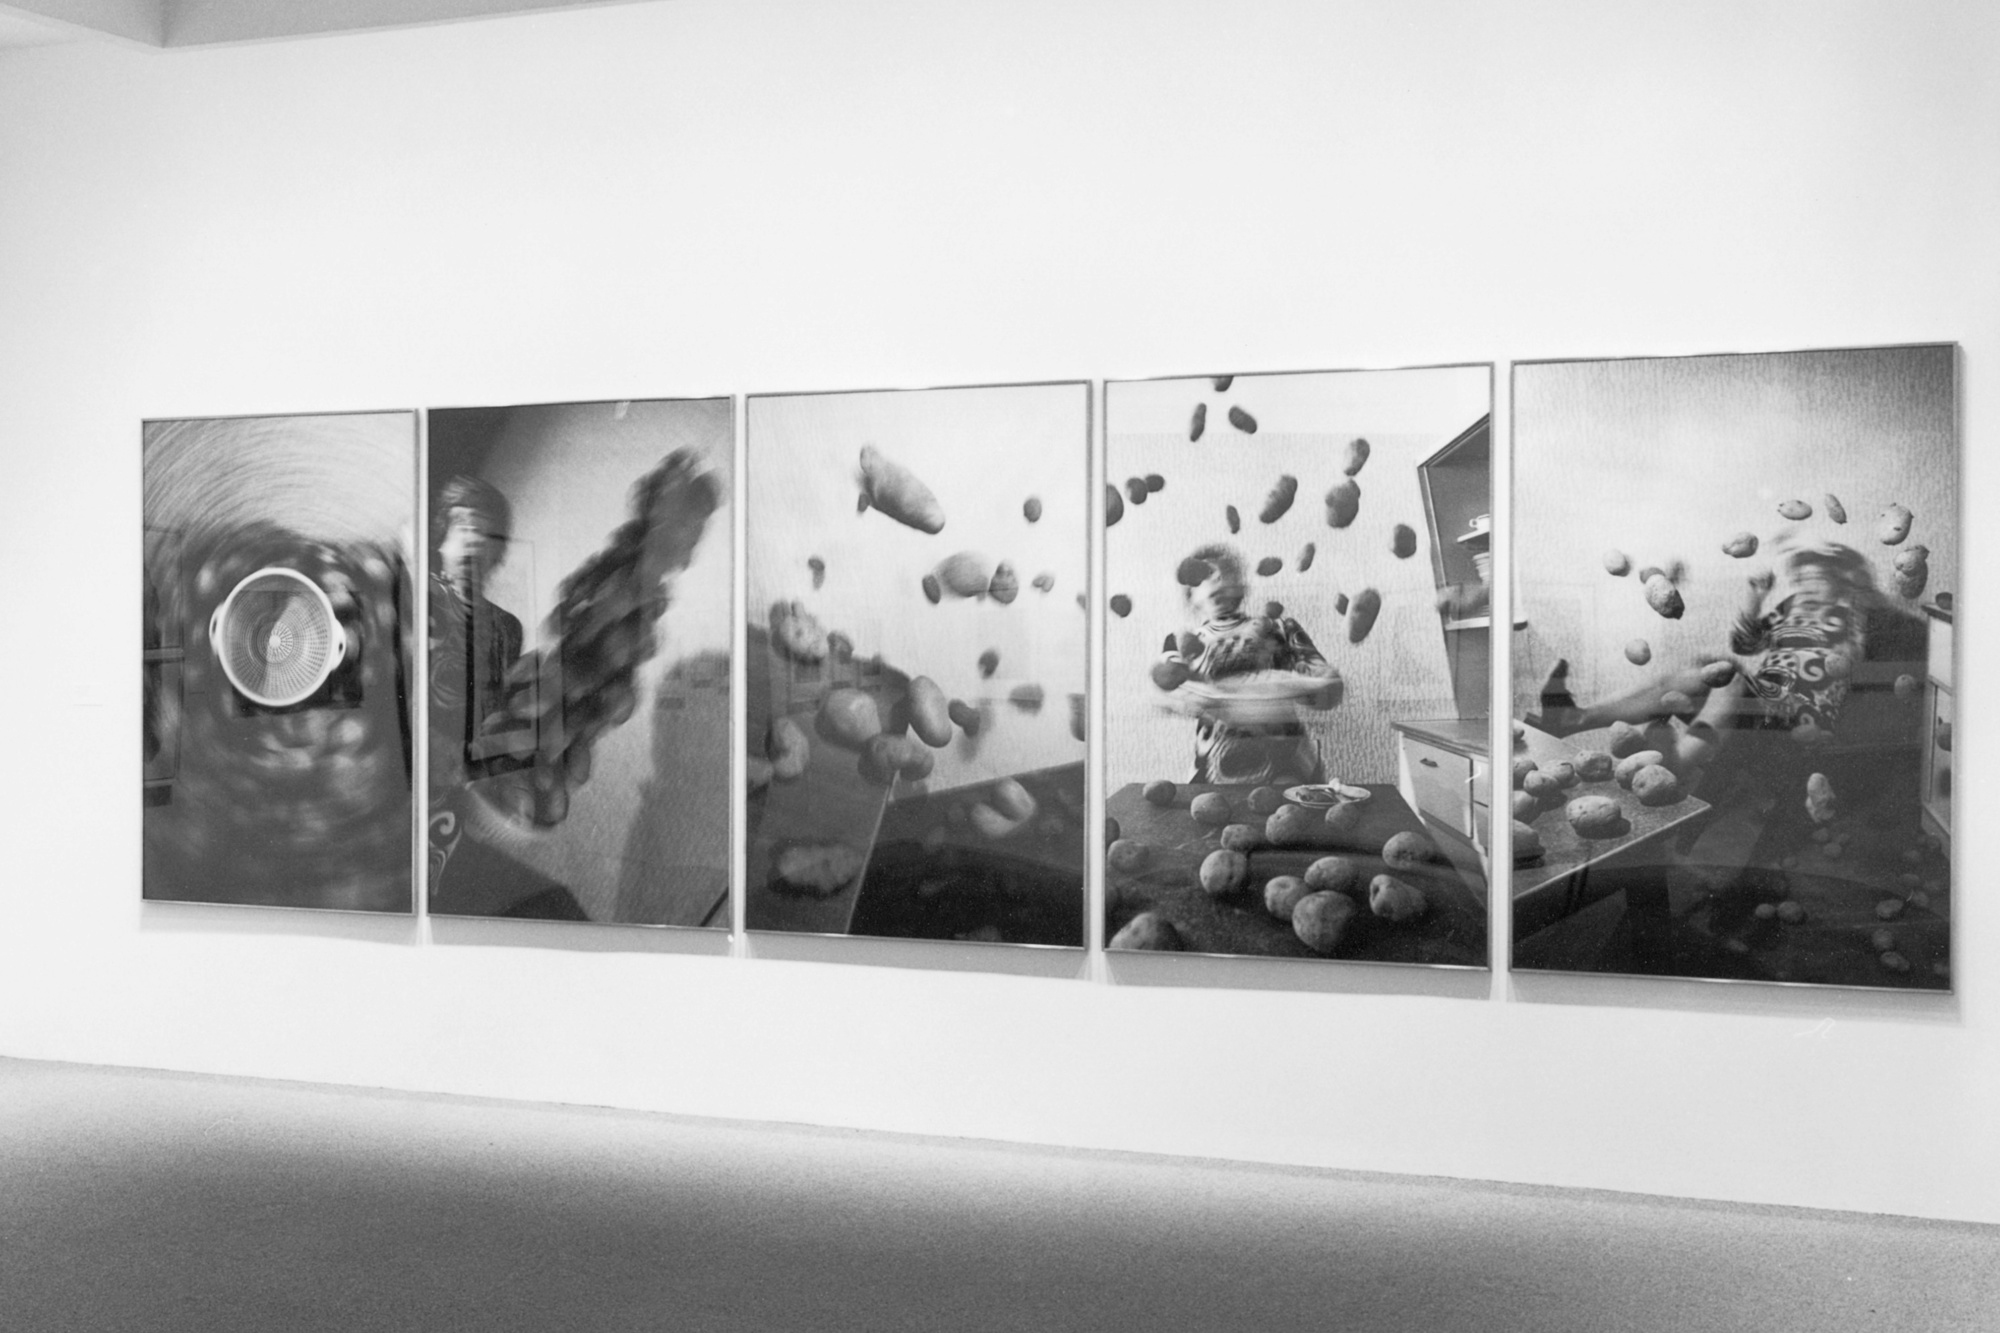 Installation view of Recent Acquisitions: Photography at The Museum of Modern Art, New York. Photo: Mali Olatunji